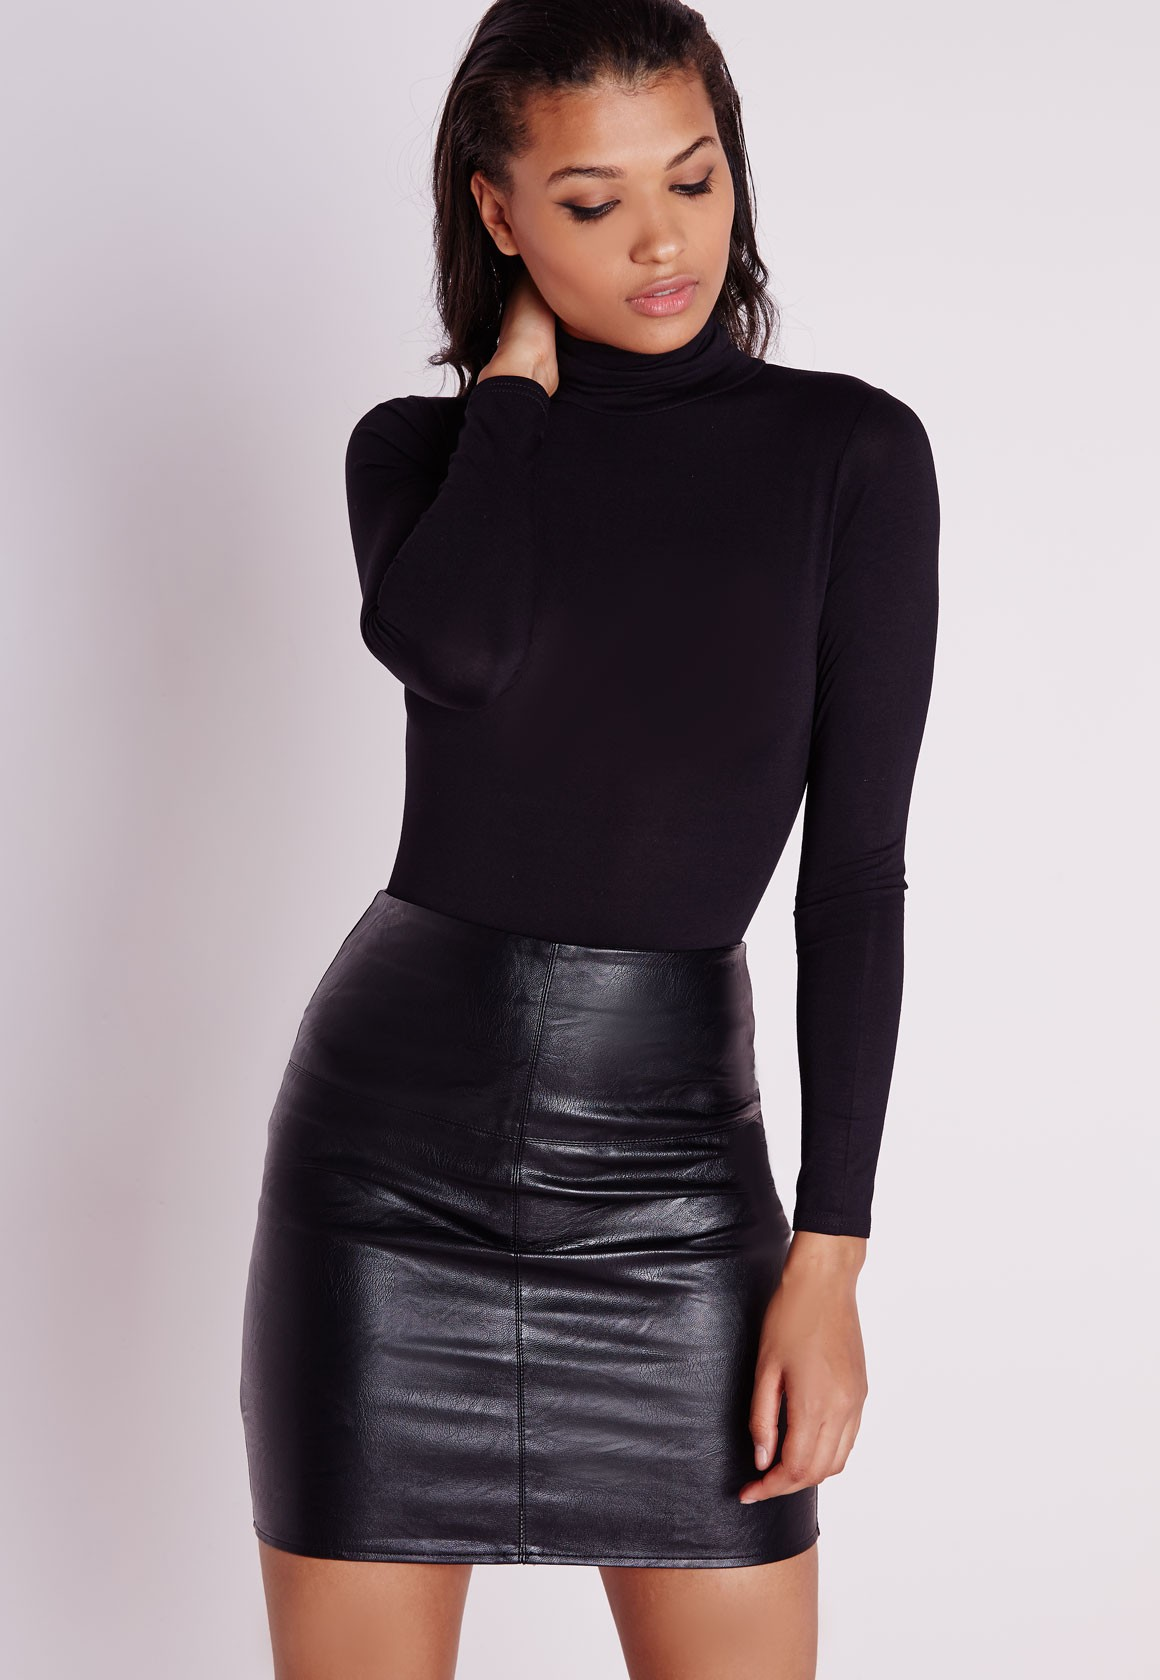 Leather Mini Skirt Black - Skirts - Mini Skirts - Missguided